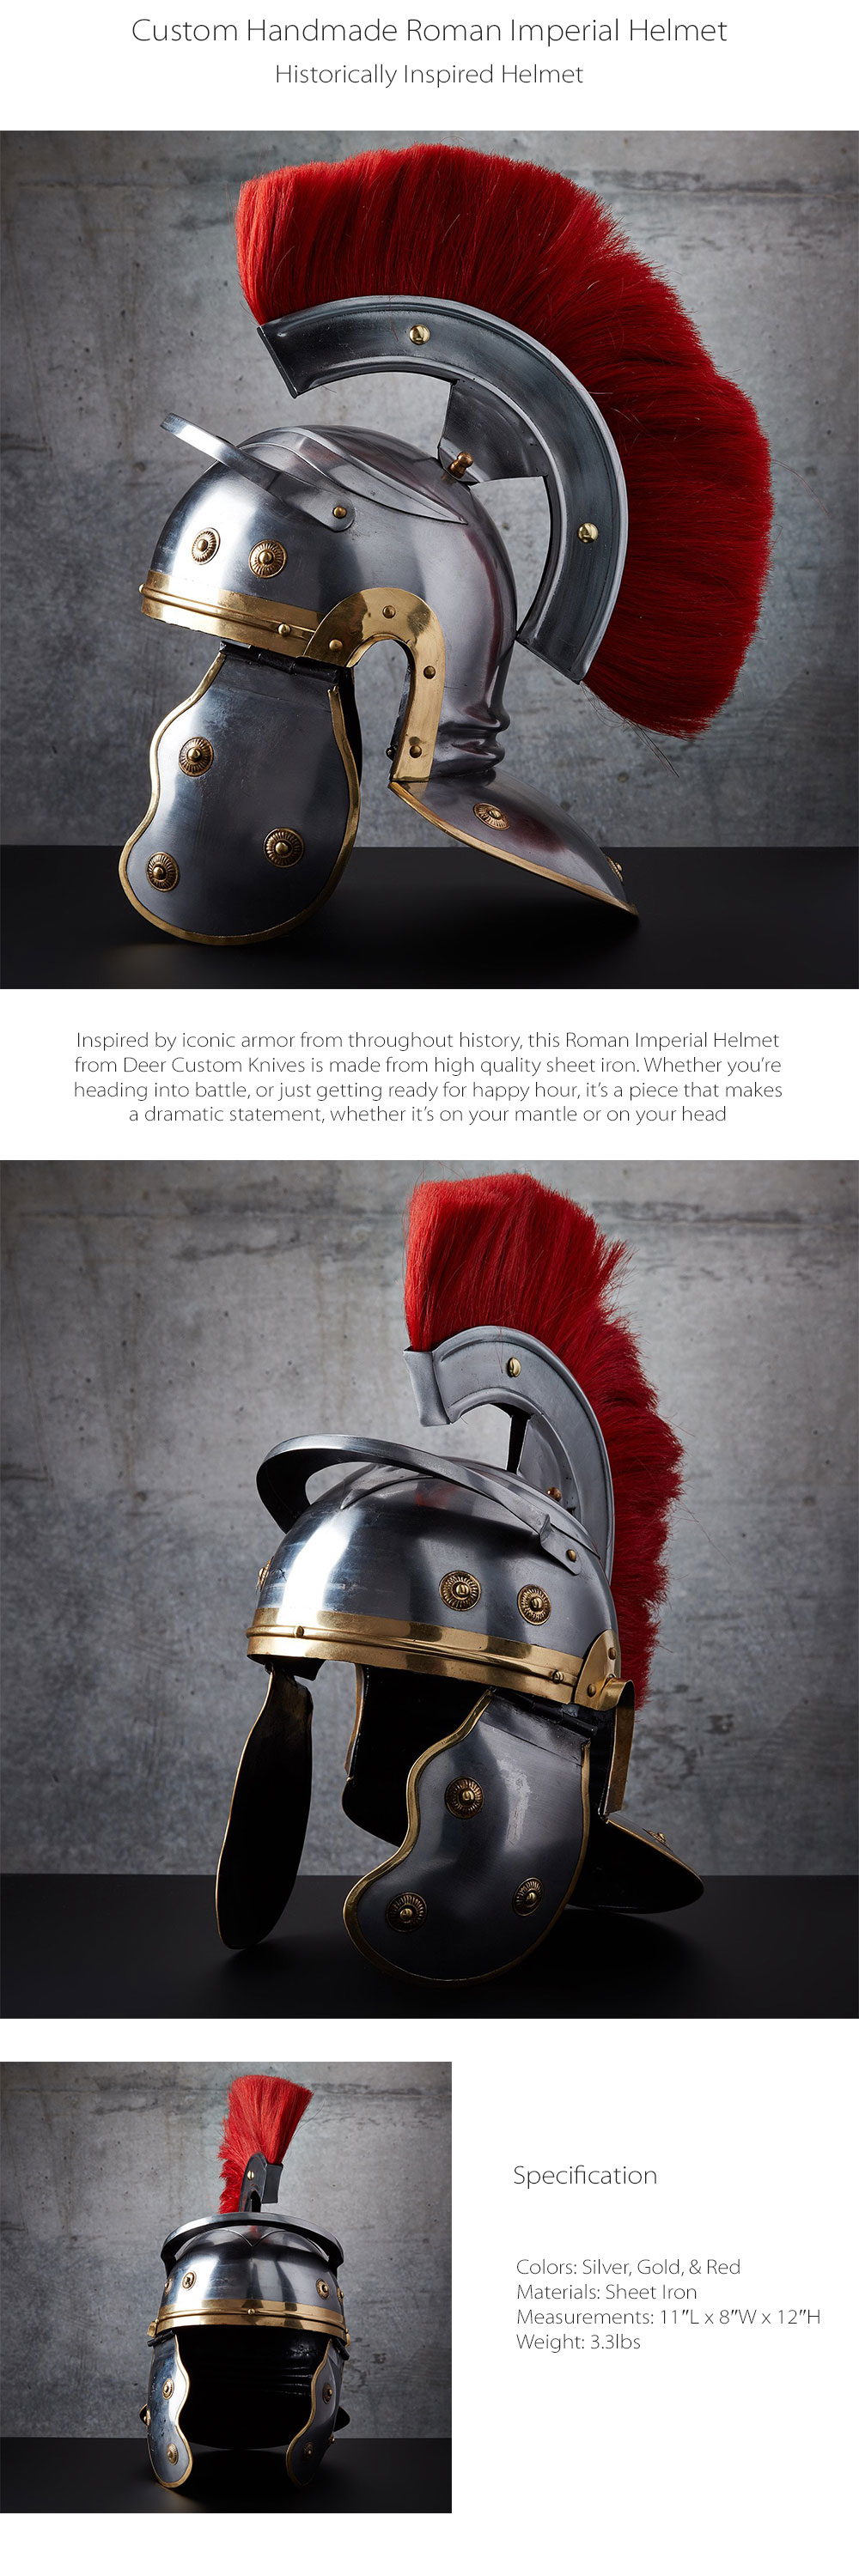 Custom Handmade Roman Imperial Helmet Inspired By Iconic Armor From Throughout History